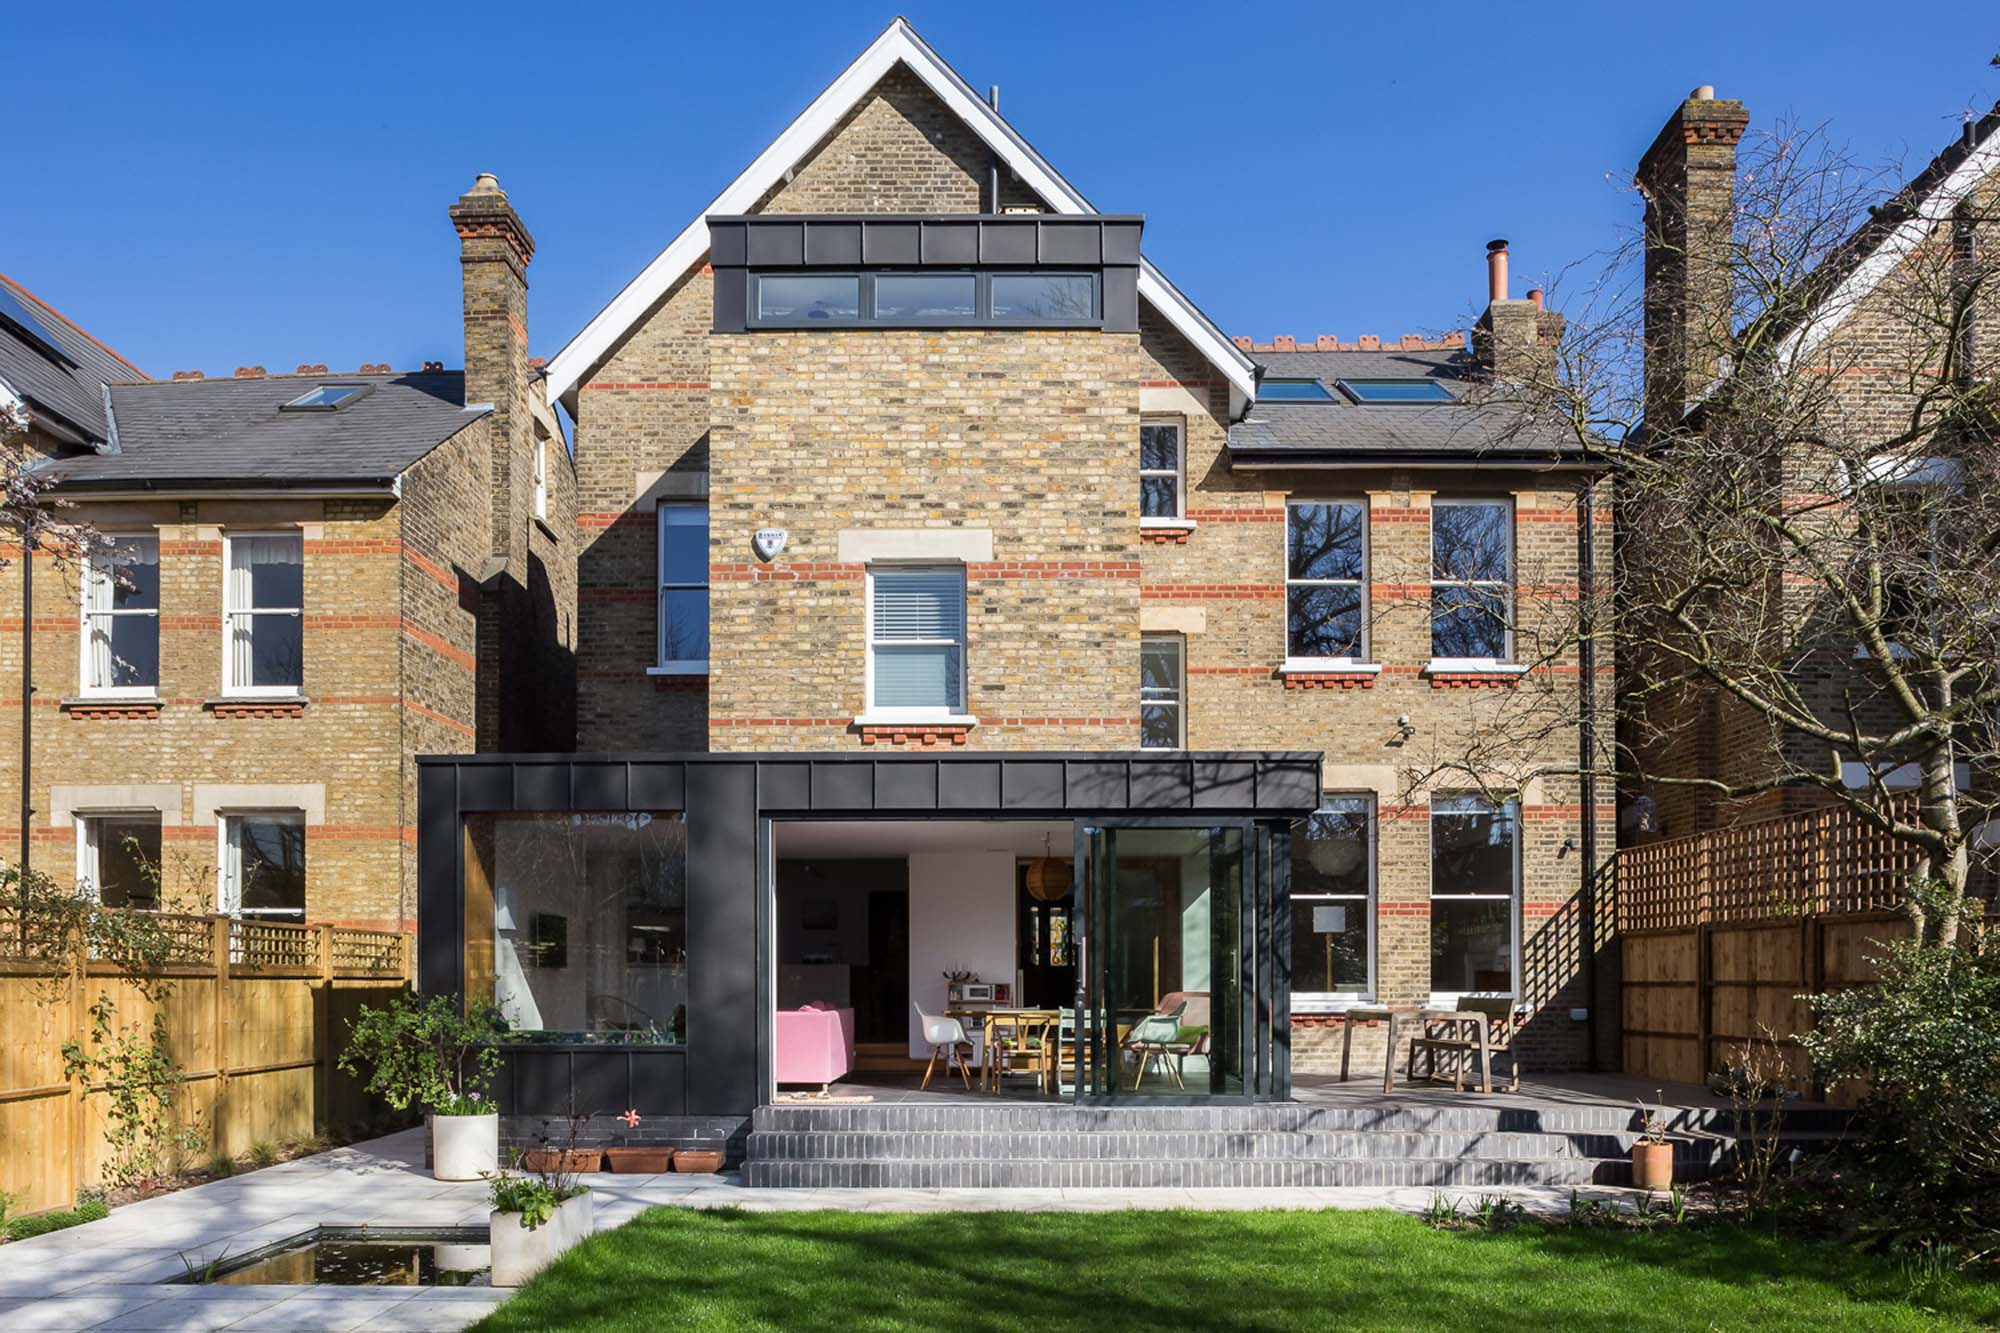 23 Things You Can Do Without Planning Permission Homebuilding